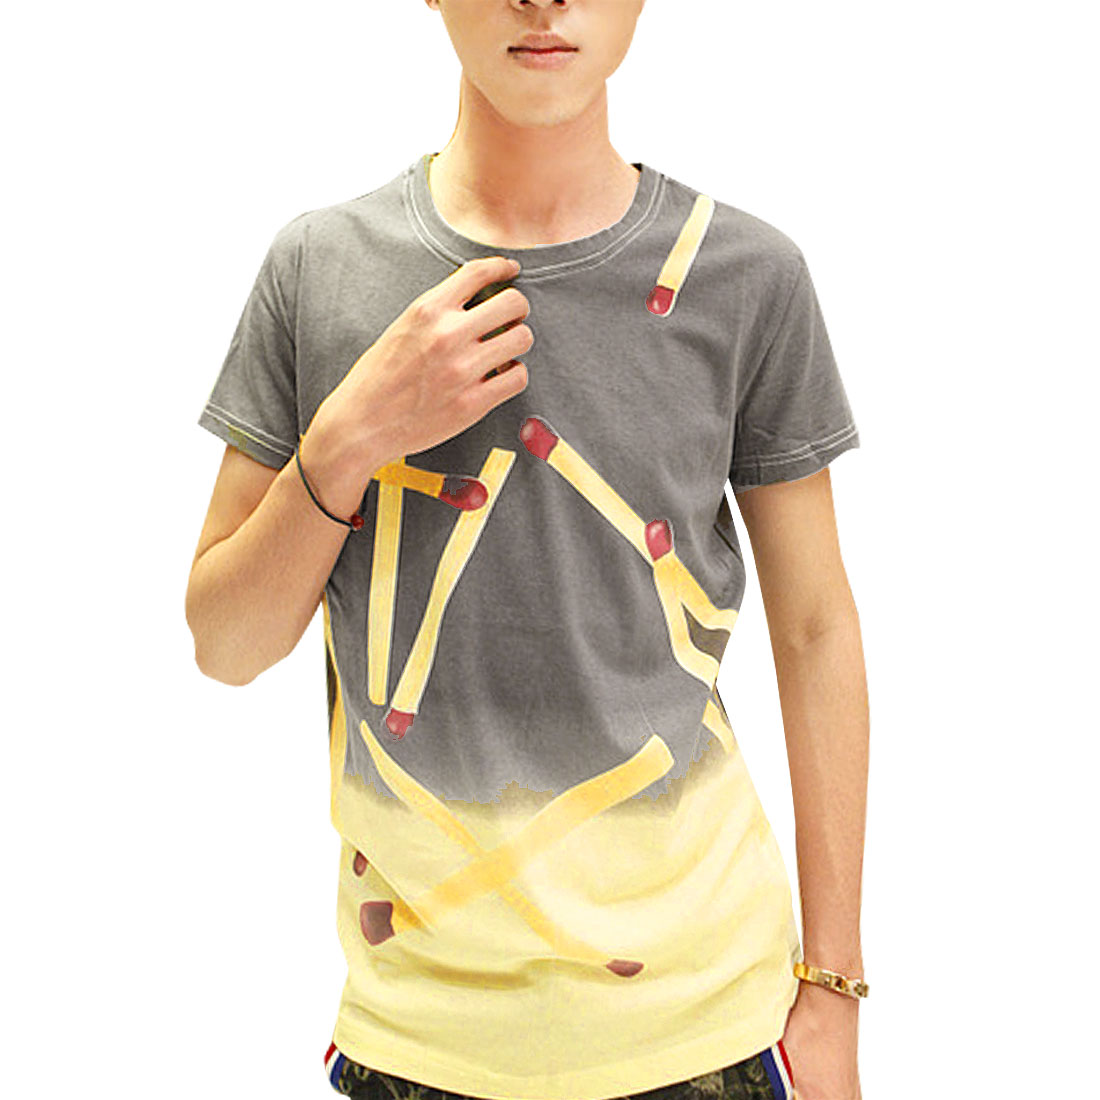 Man Pullover Round Neck Matches Print Gradient Style T-Shirt Gray Yellow S